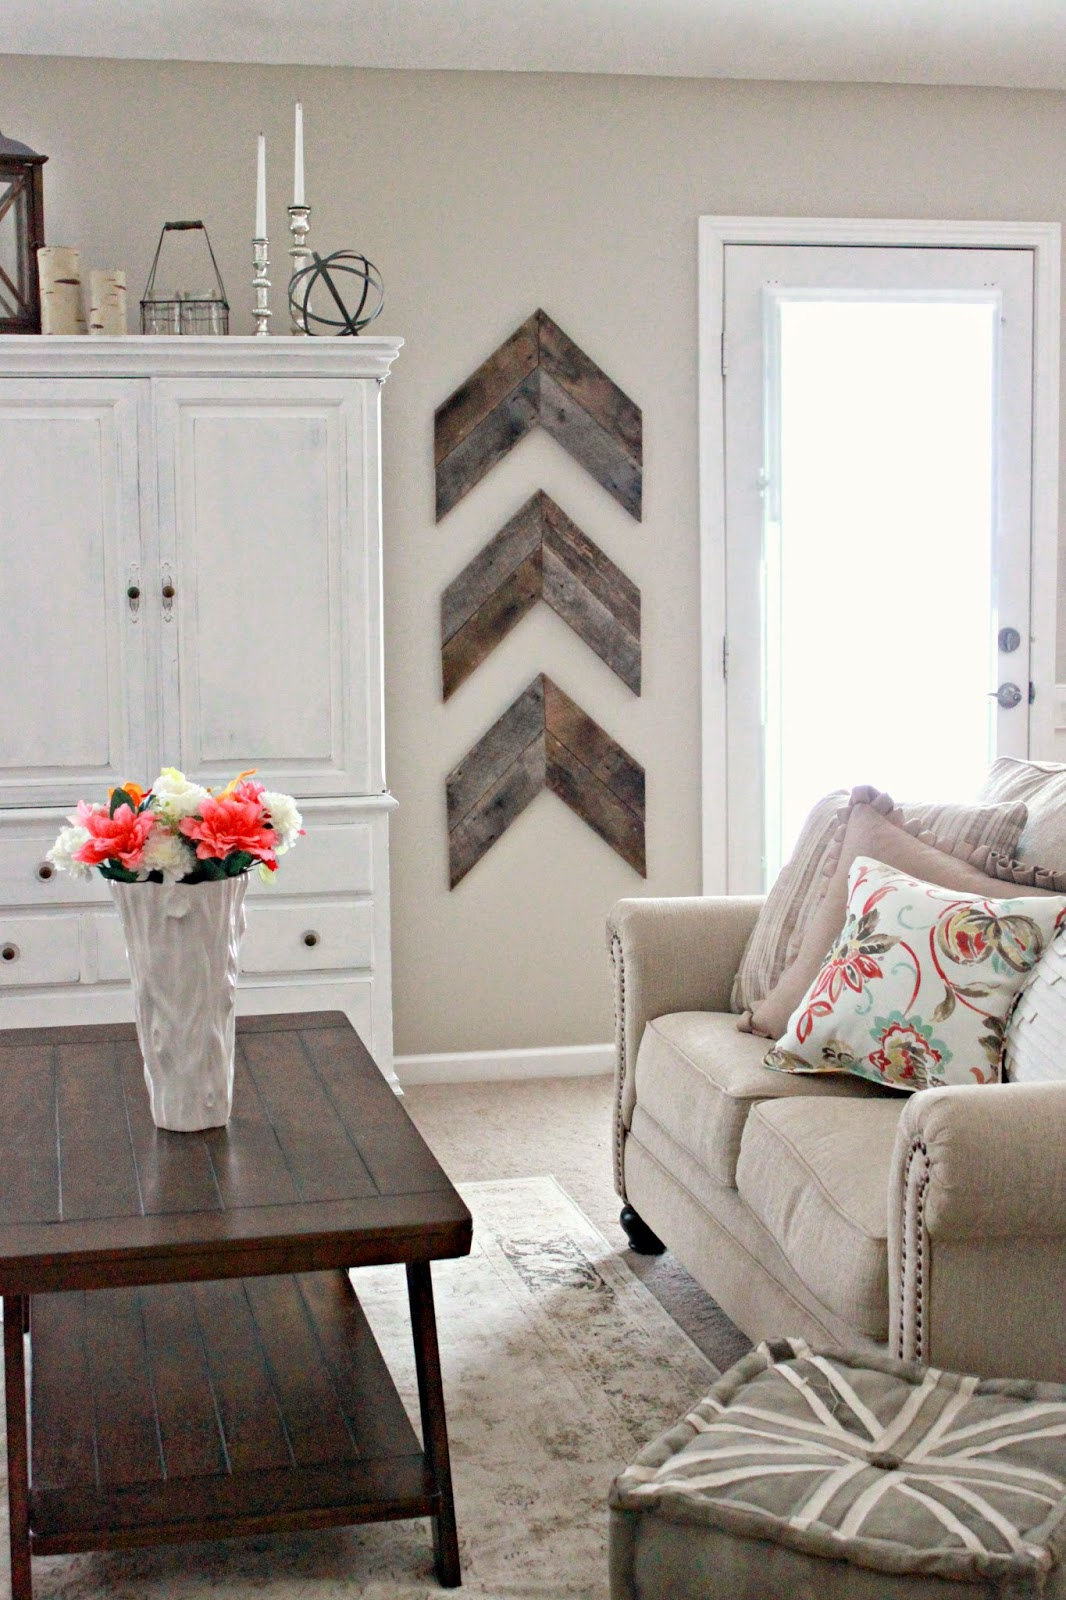 15 striking ways to decorate with arrows Living room art